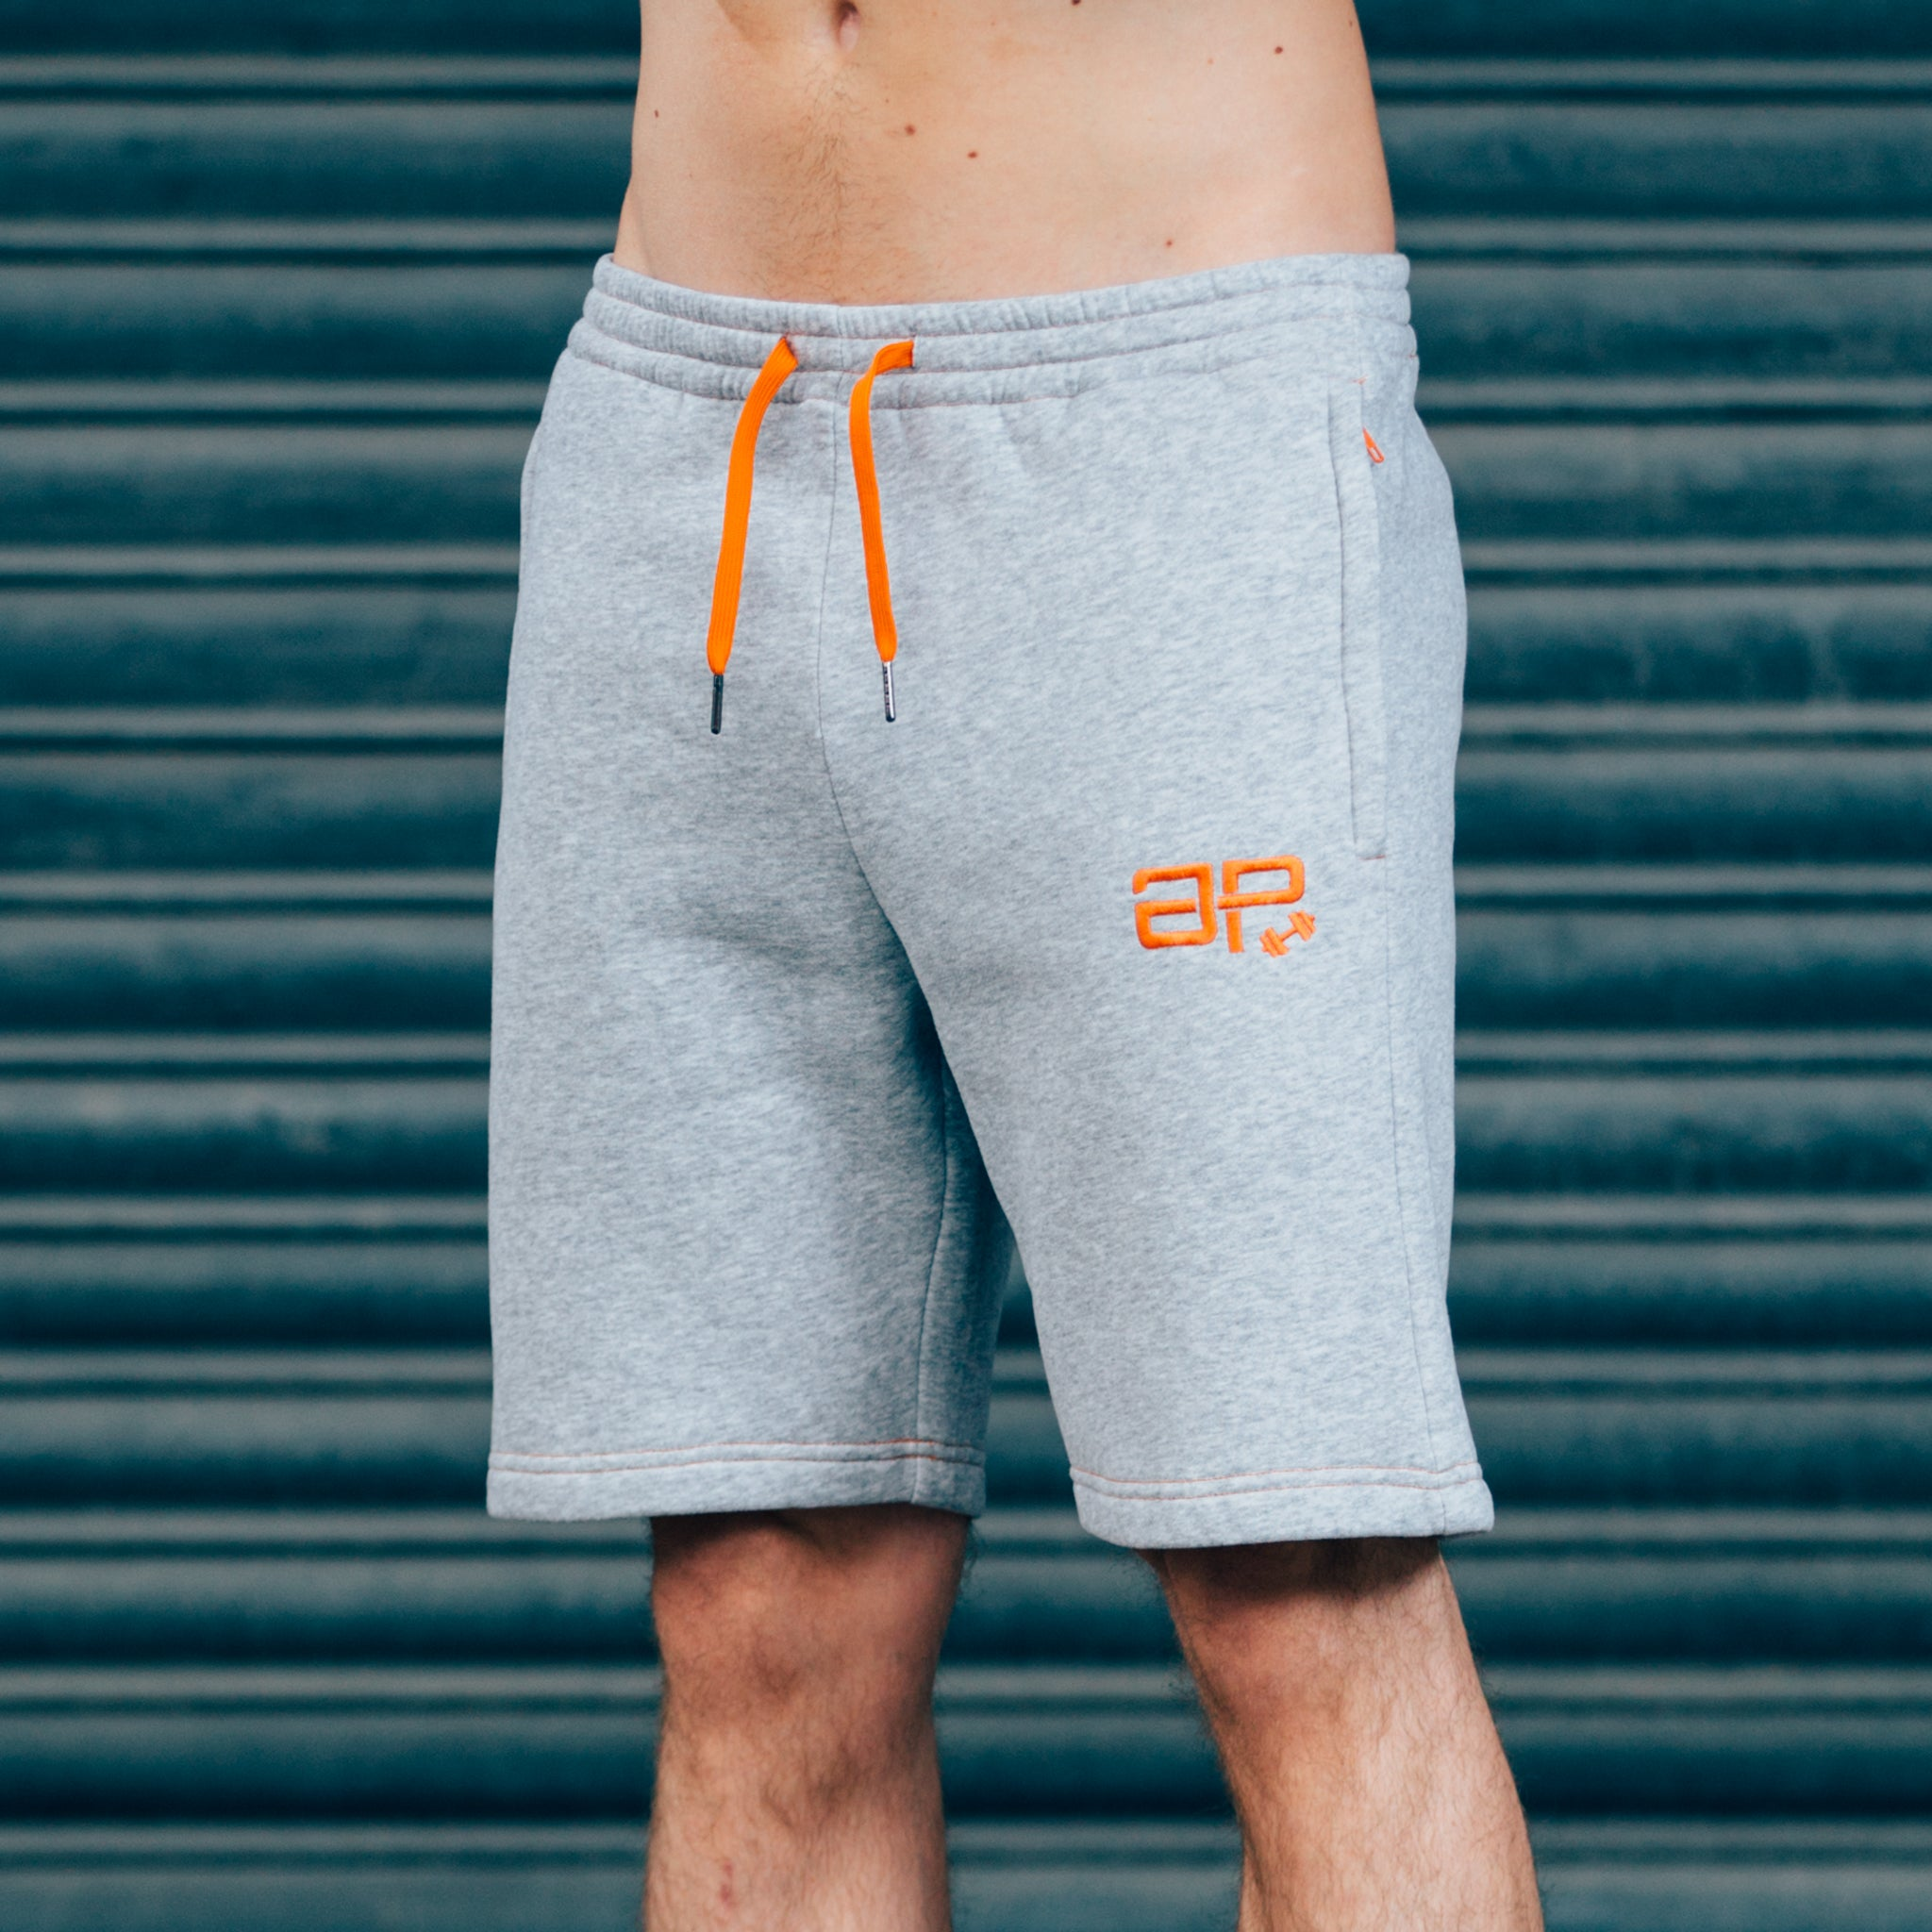 CozyFit Shorts - Grey & Orange